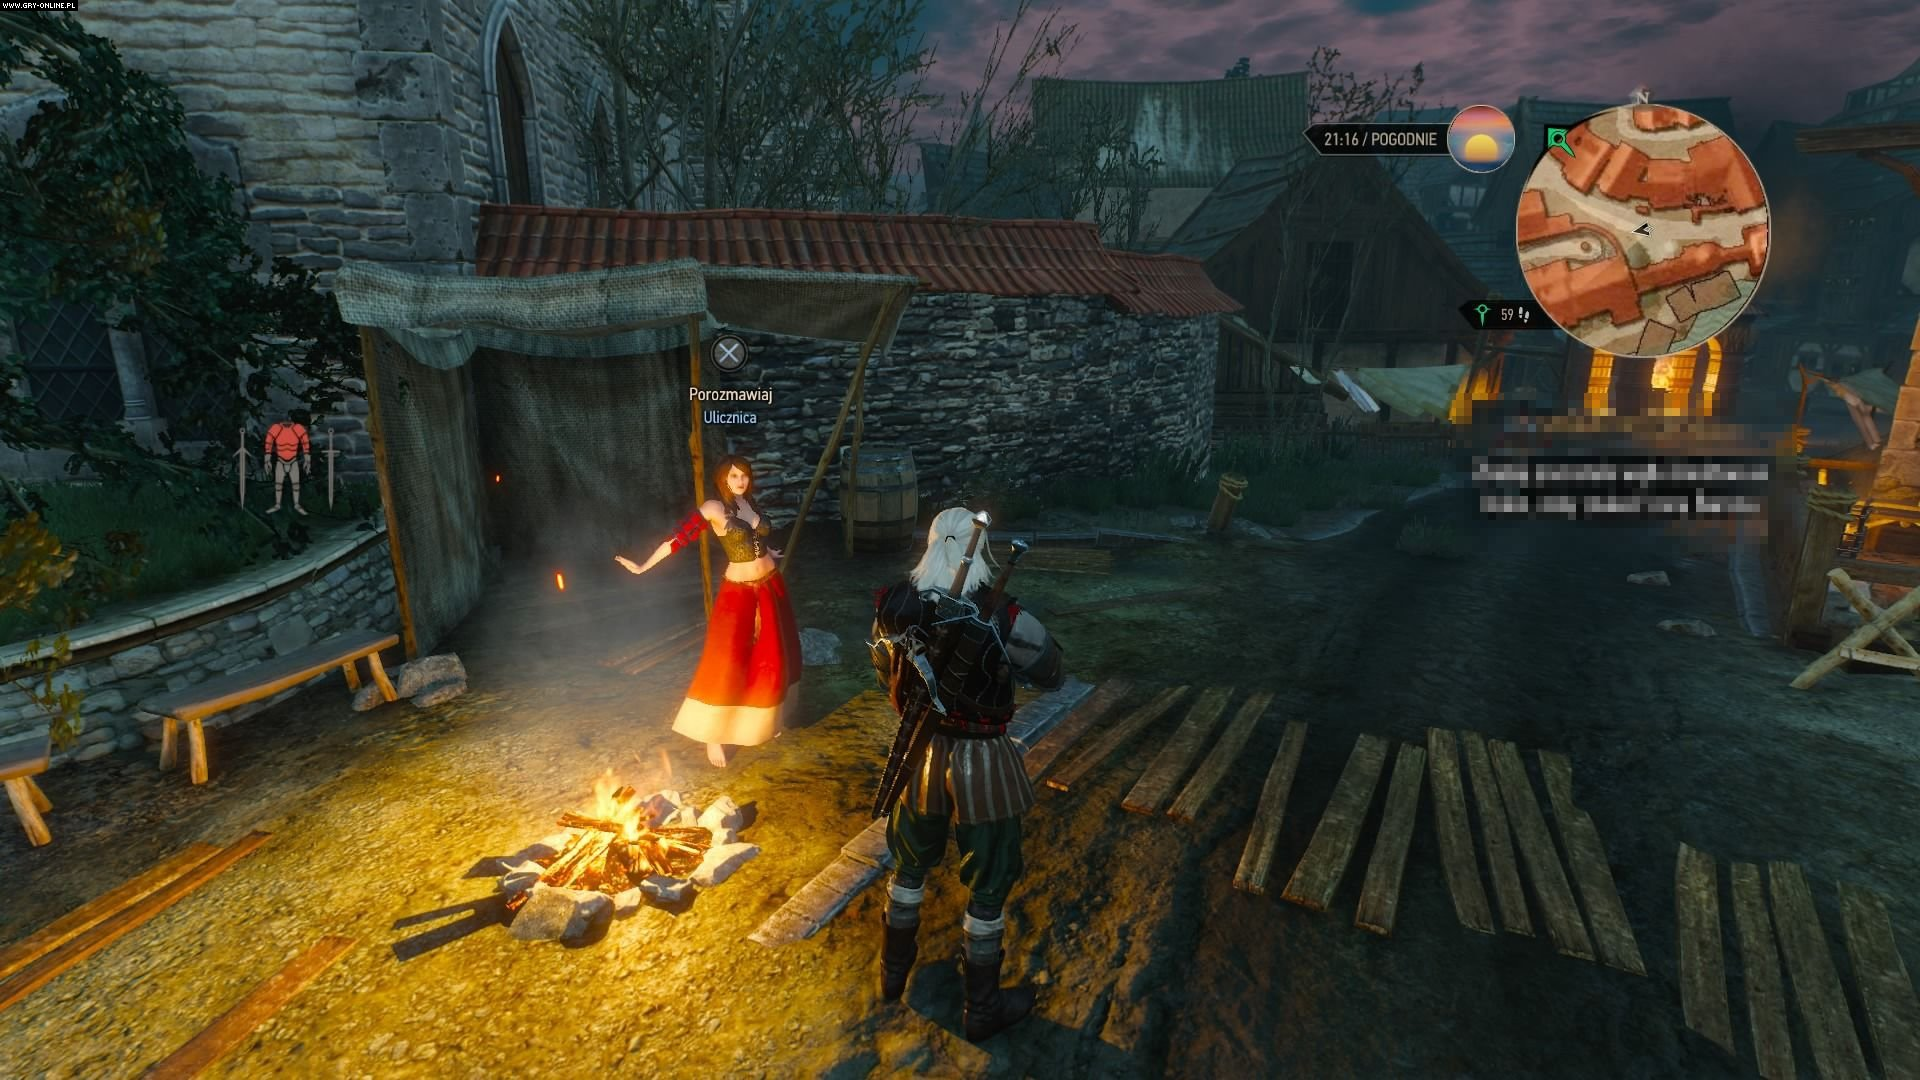 The Witcher 3: Wild Hunt PS4 Games Image 27/209, CD Projekt RED